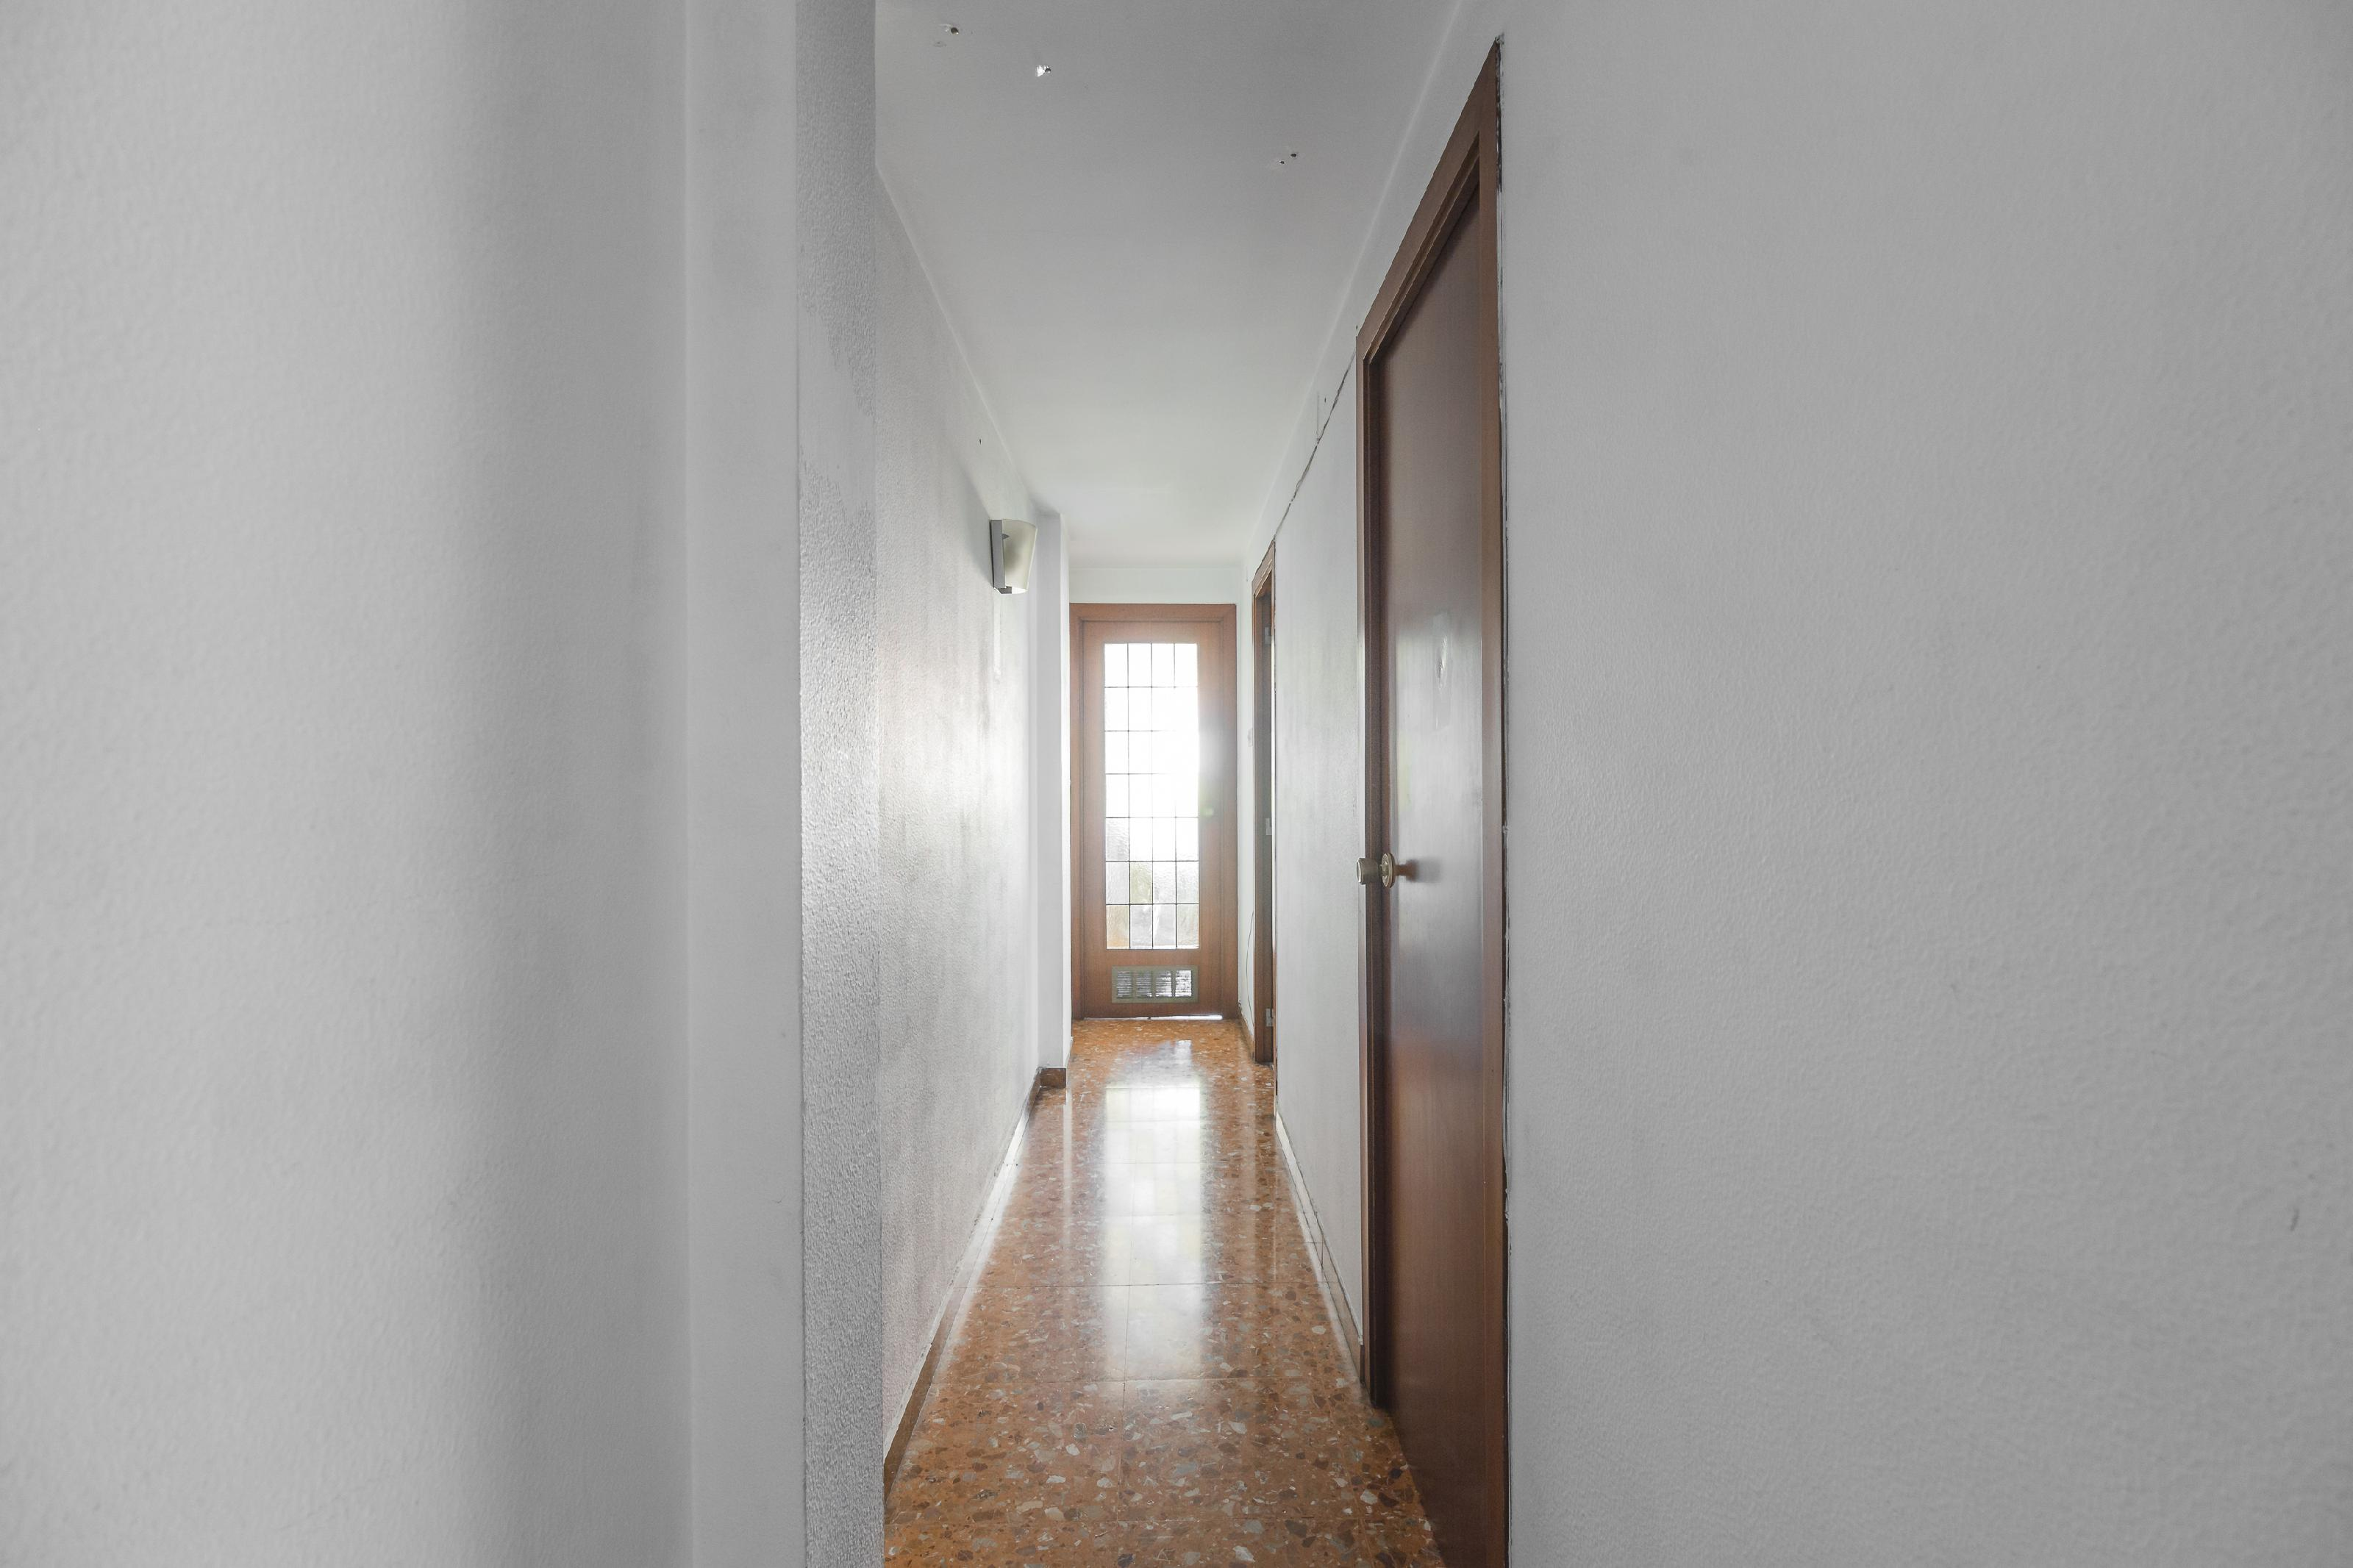 239426 Flat for sale in Les Corts, Les Corts 21